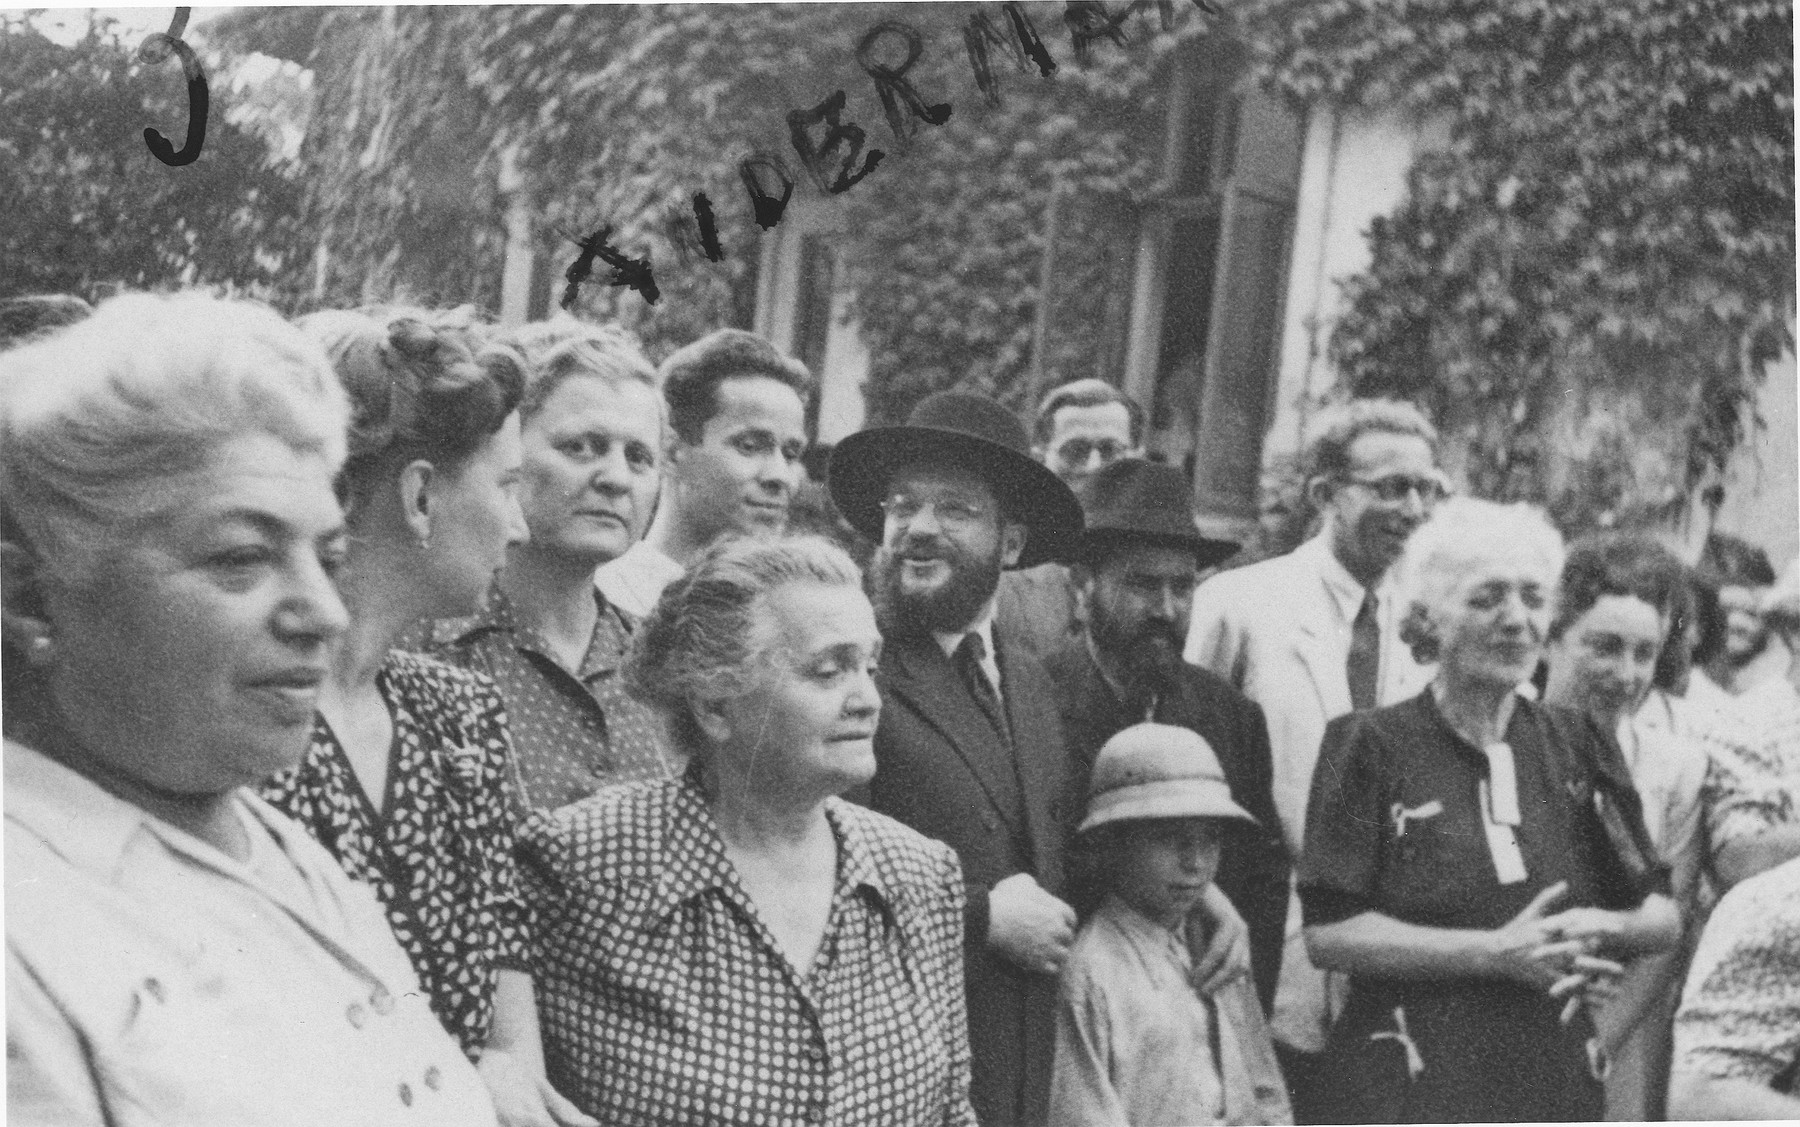 Romanian Jews celebrate the return of the surviving orphans of the camps and ghettos in Transnistria at an orphanage in Bucharest, where some of the children are being housed.   Among those pictured are Amy (Hubner) Andermann (third from the left in the second row) and Romanian chief rabbi Alexander Safran (center).